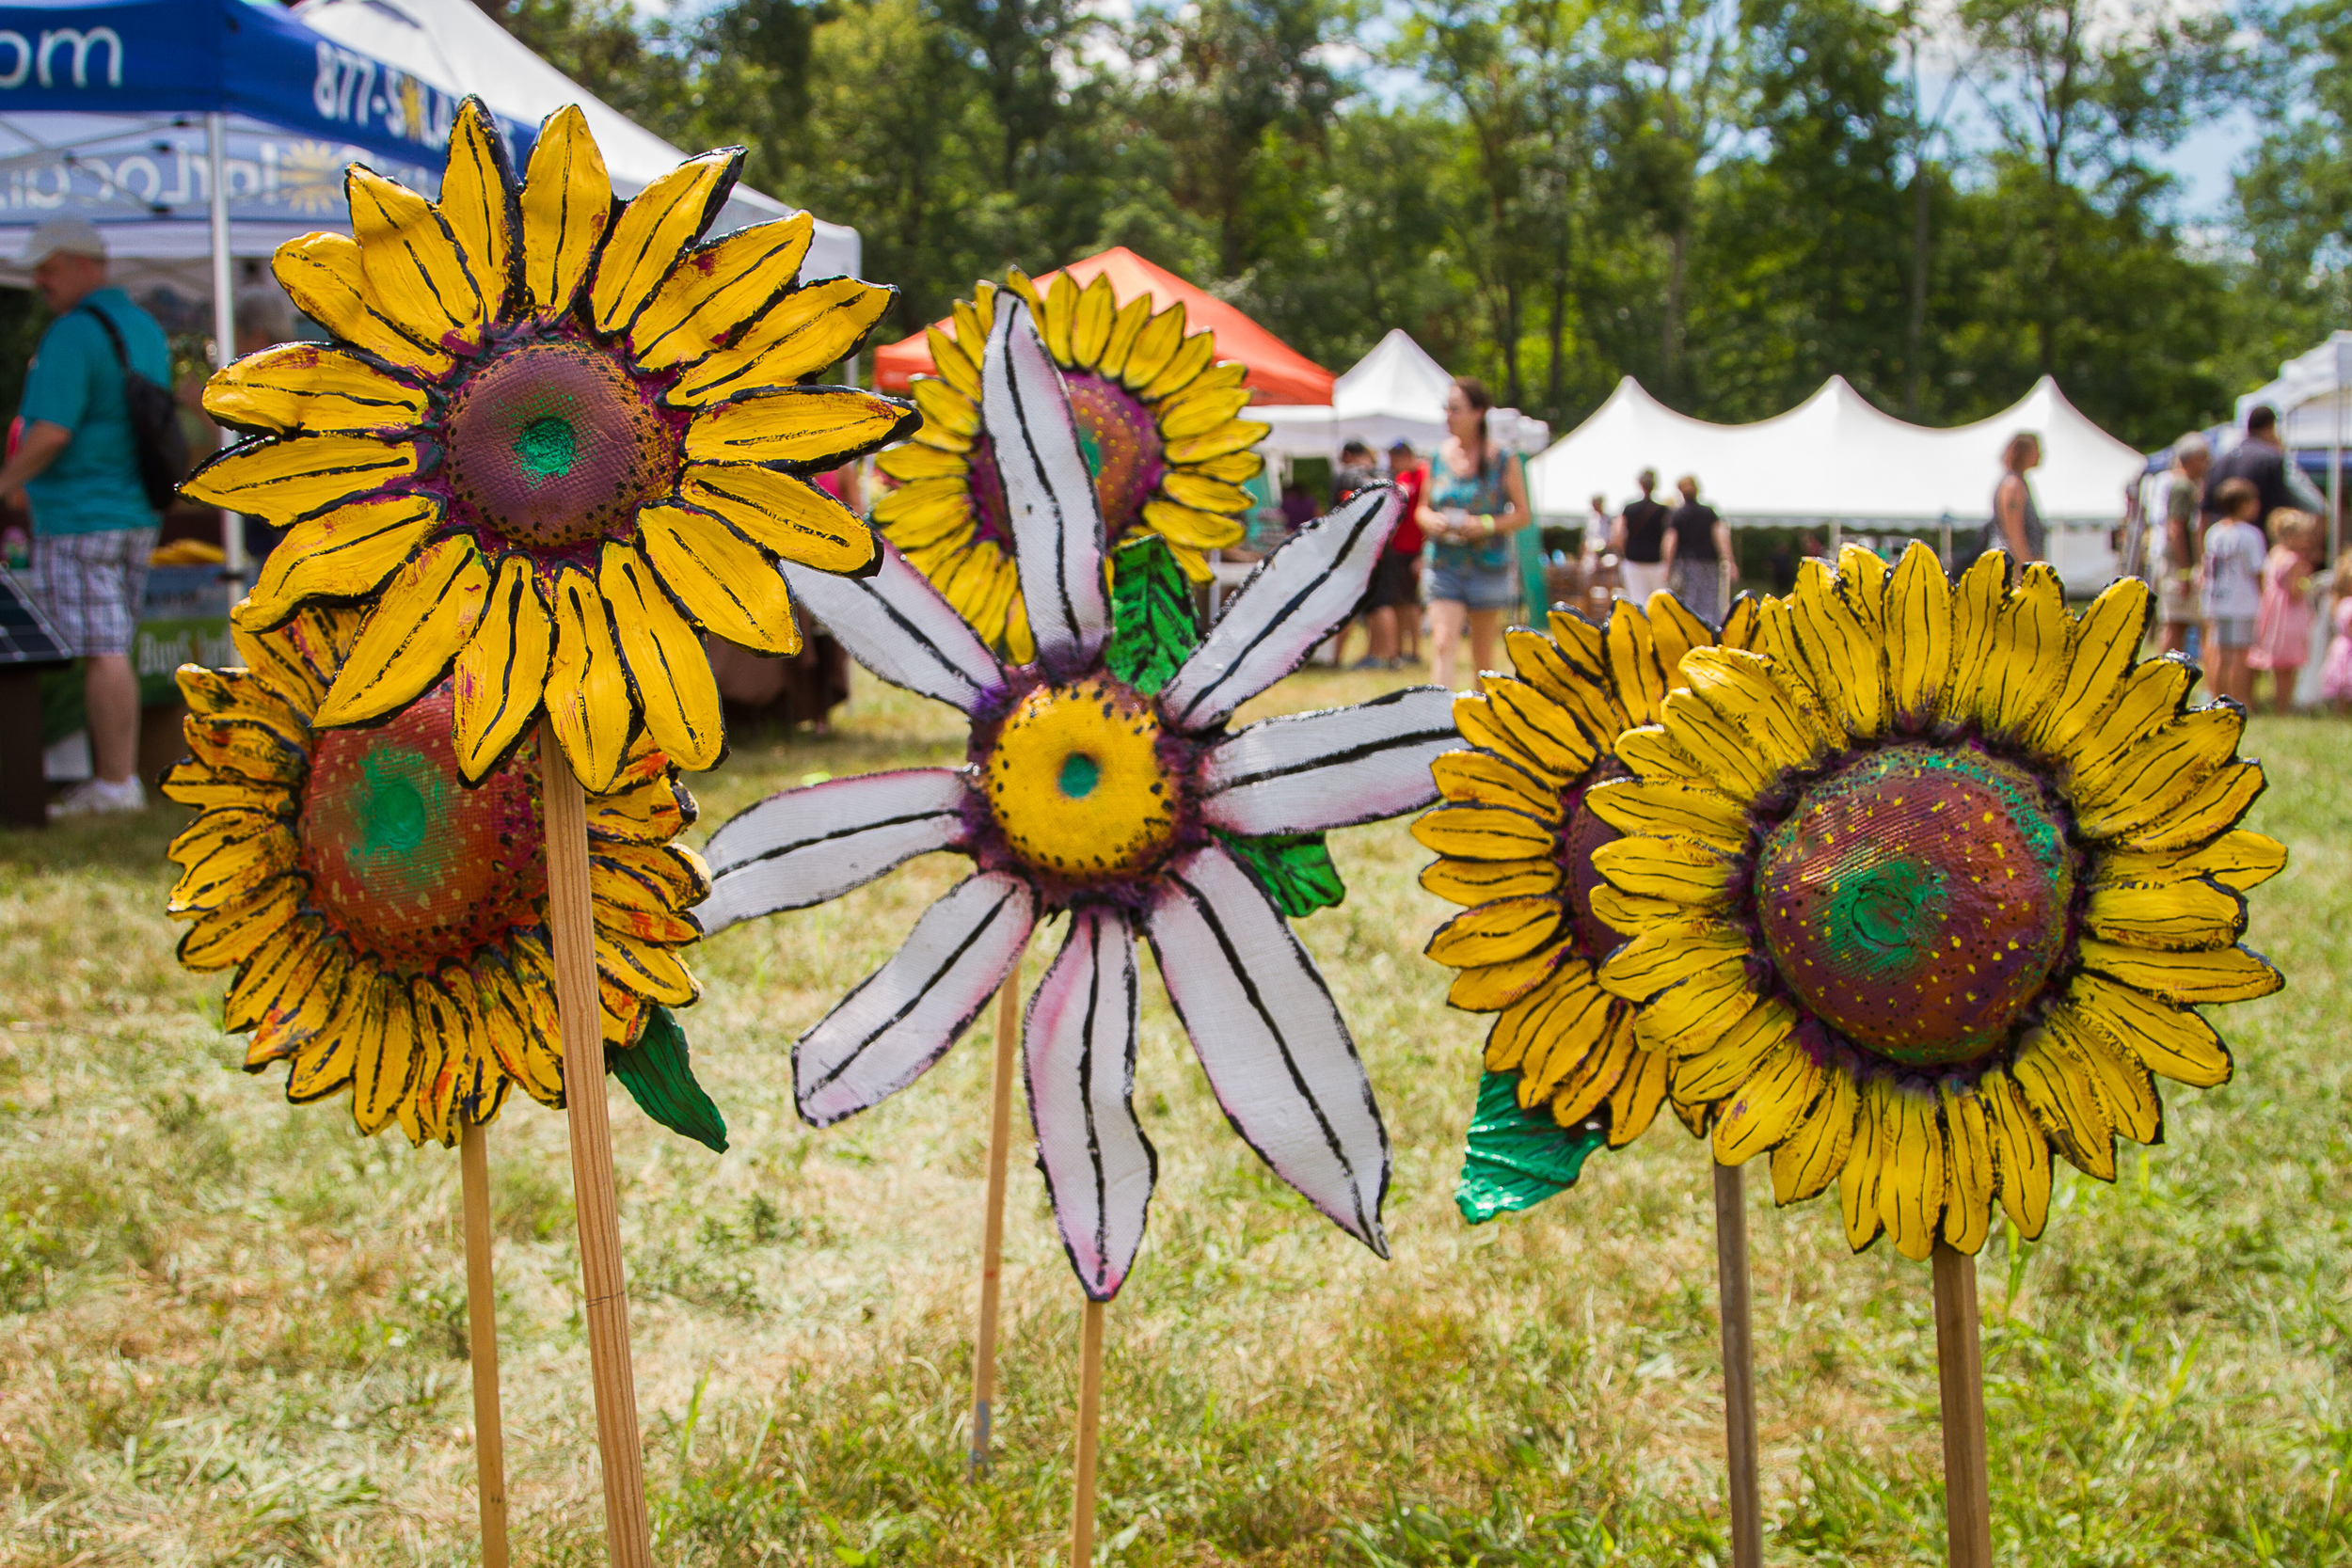 Sunflower_Art_Fest_CodyBuesing-62.jpg